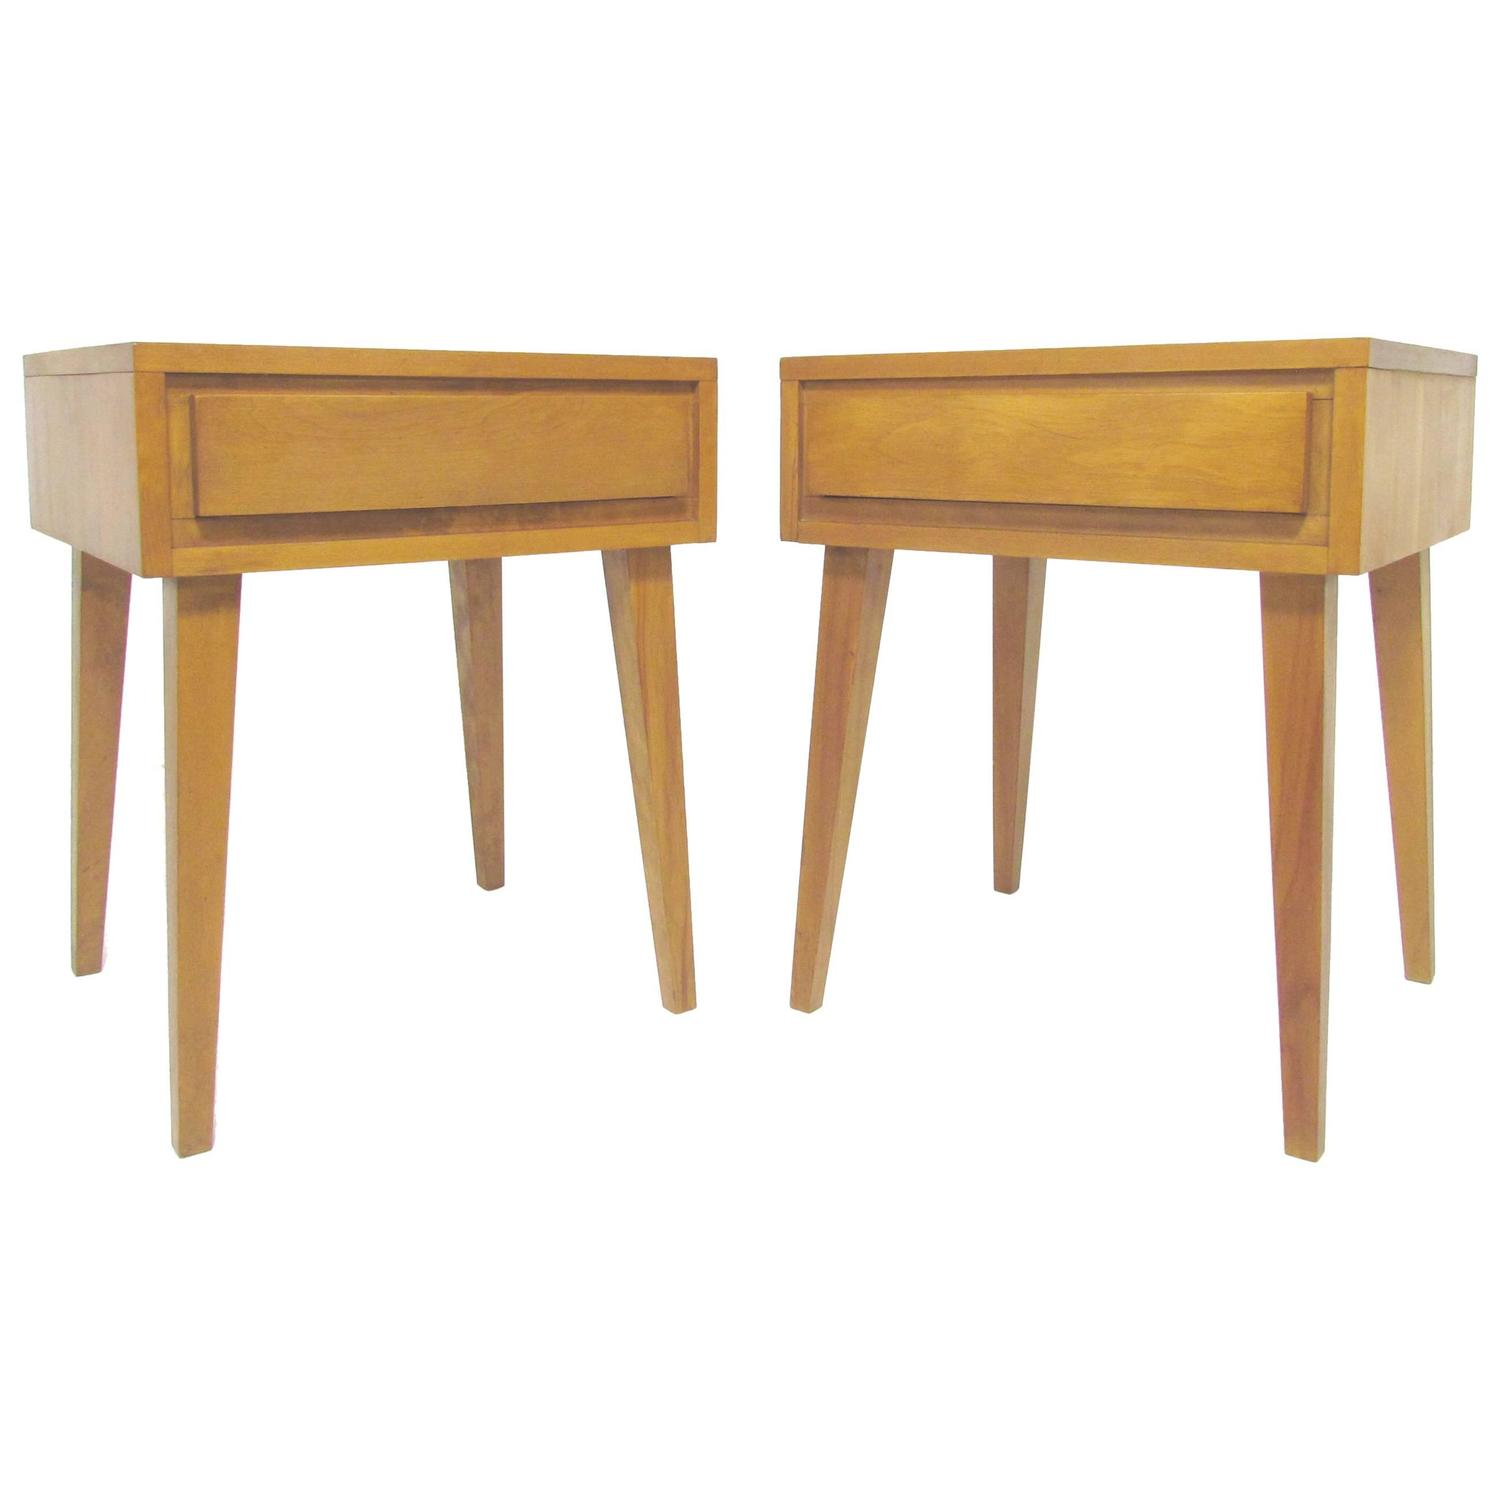 Pair Of End Tables Or Nightstands By Russel Wright For Conant Ball At 1stdibs